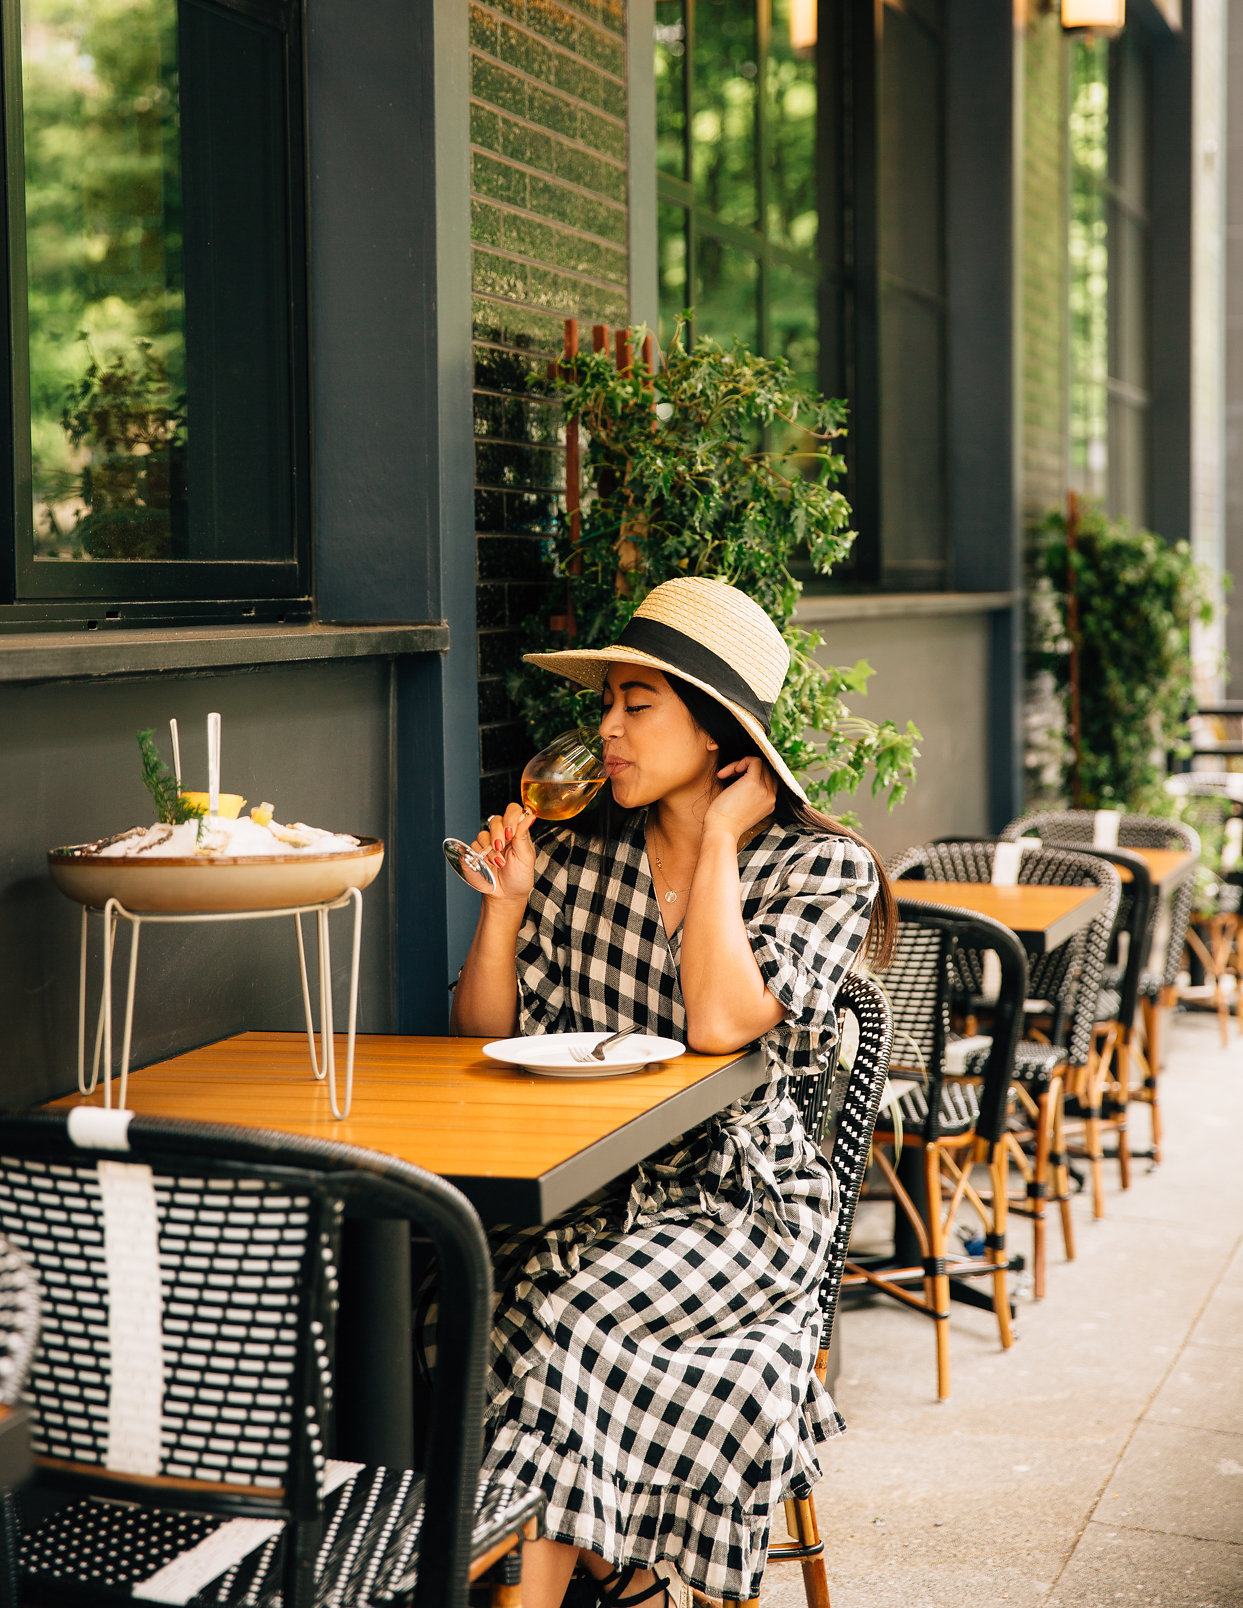 5 Reasons To Stay At The Hotel Theodore When You Visit Seattle